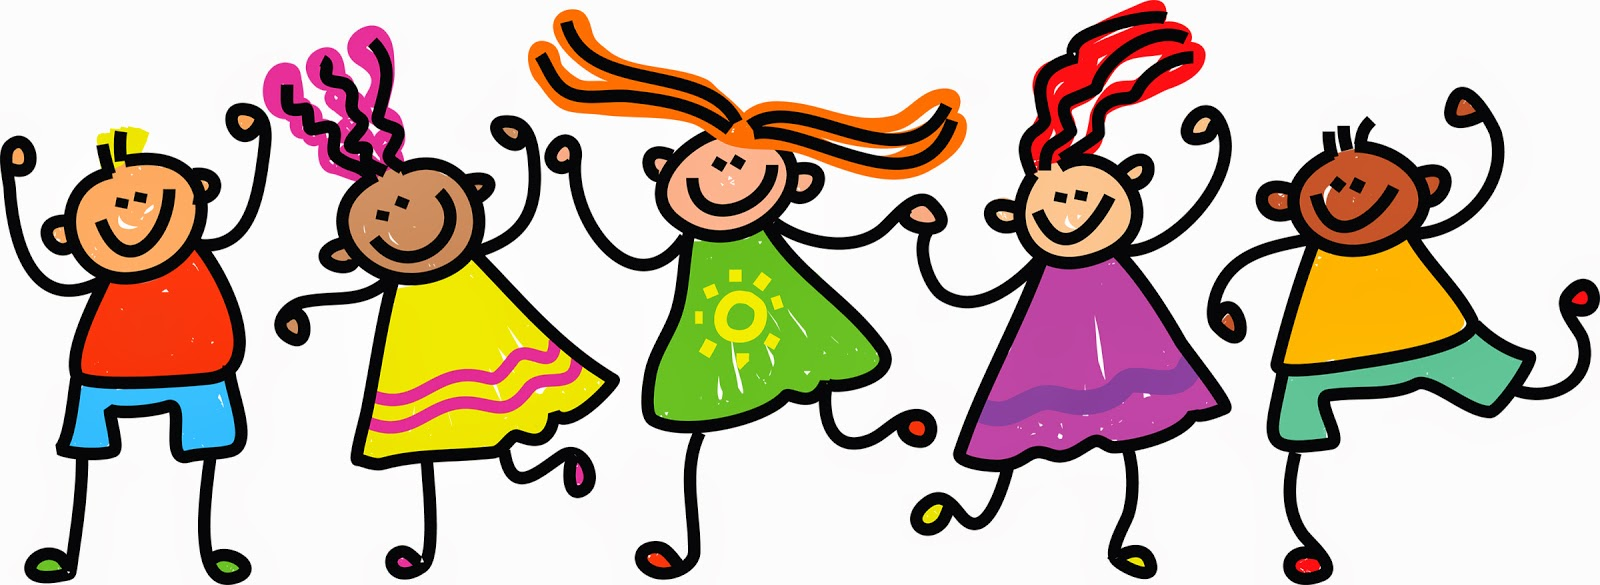 Free Summer Show Cliparts, Download Free Clip Art, Free Clip.